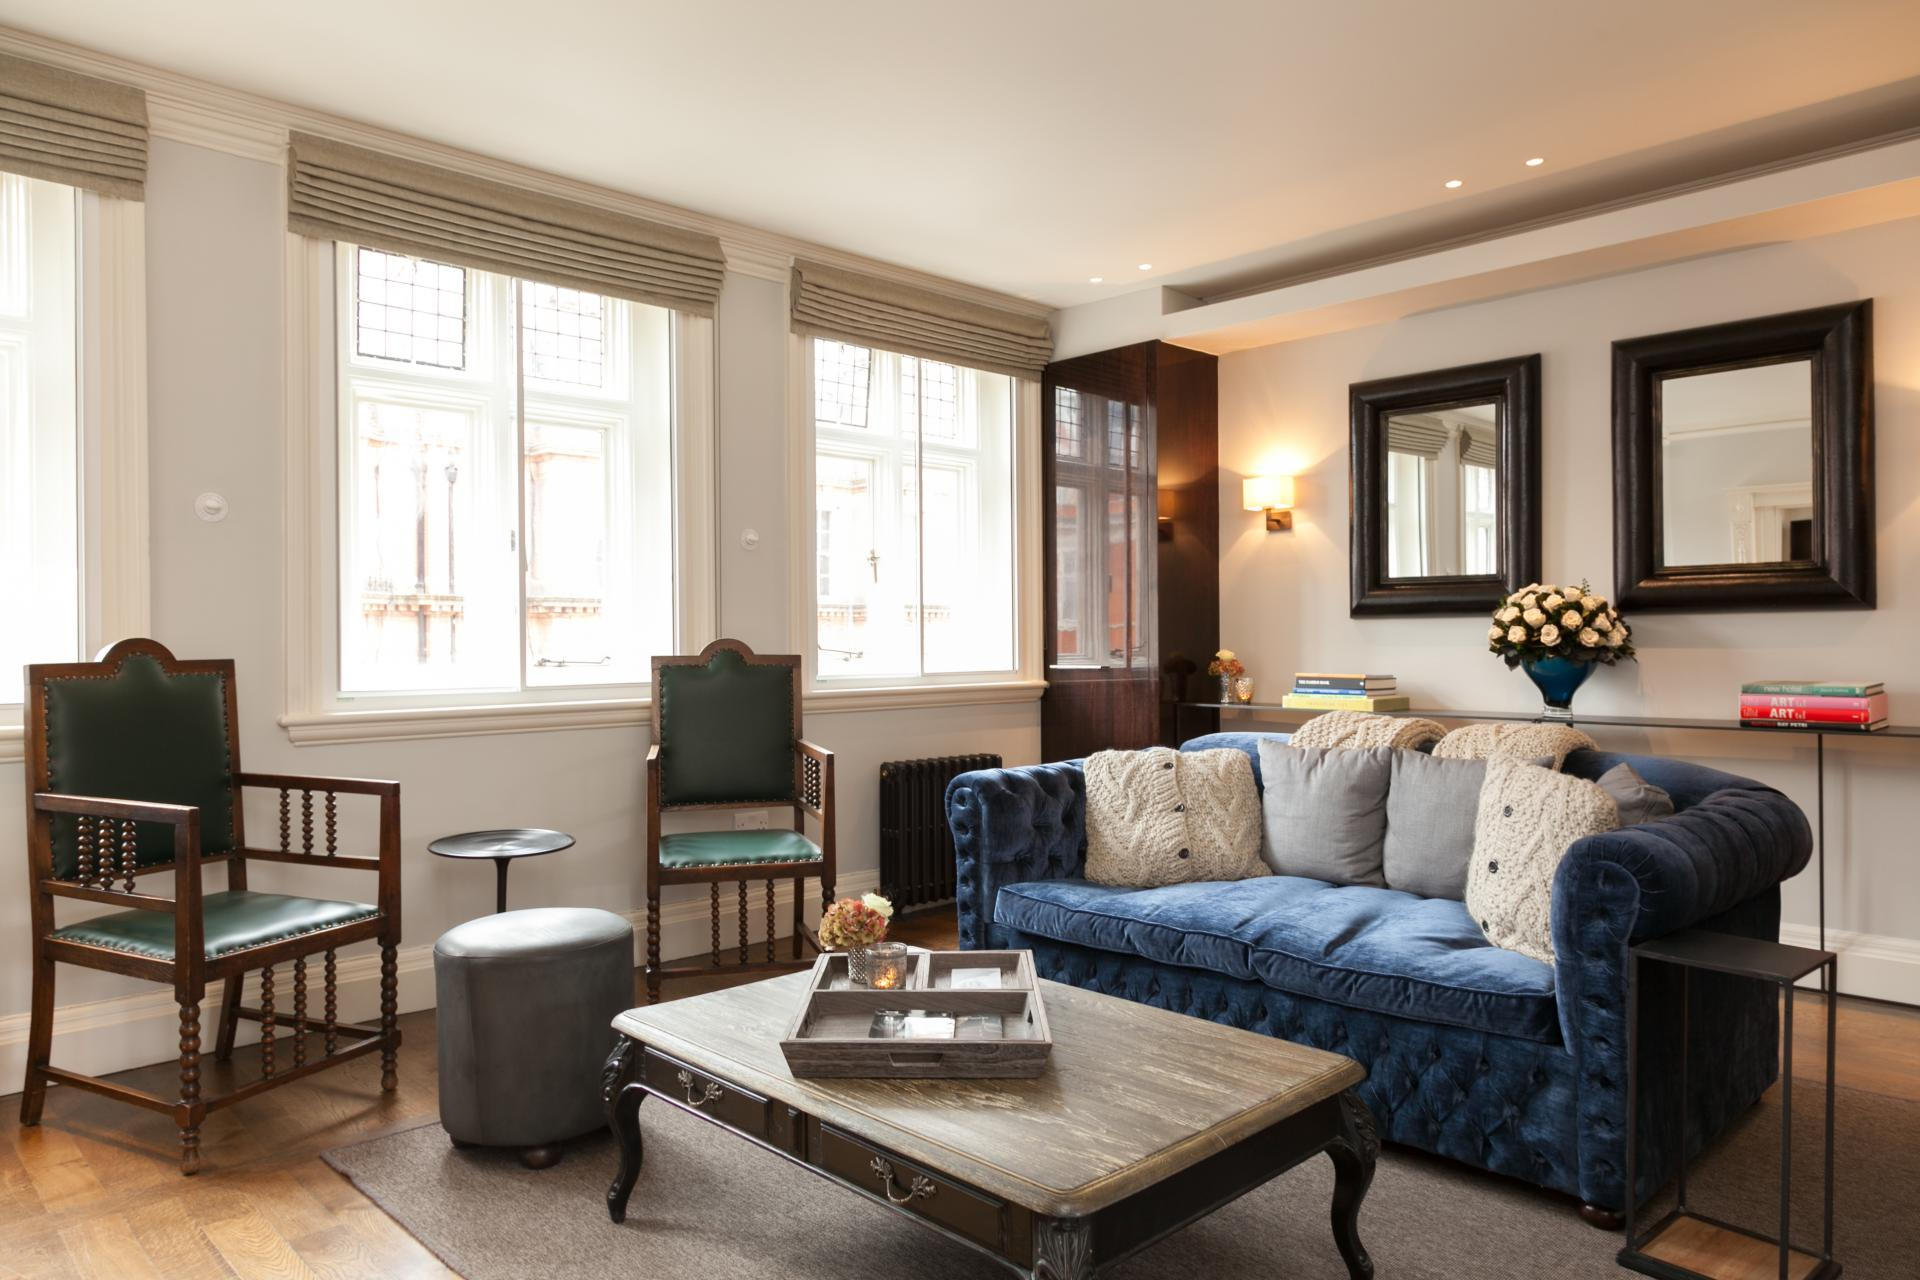 Living area at Luxurious Mayfair Apartments, Mayfair, London